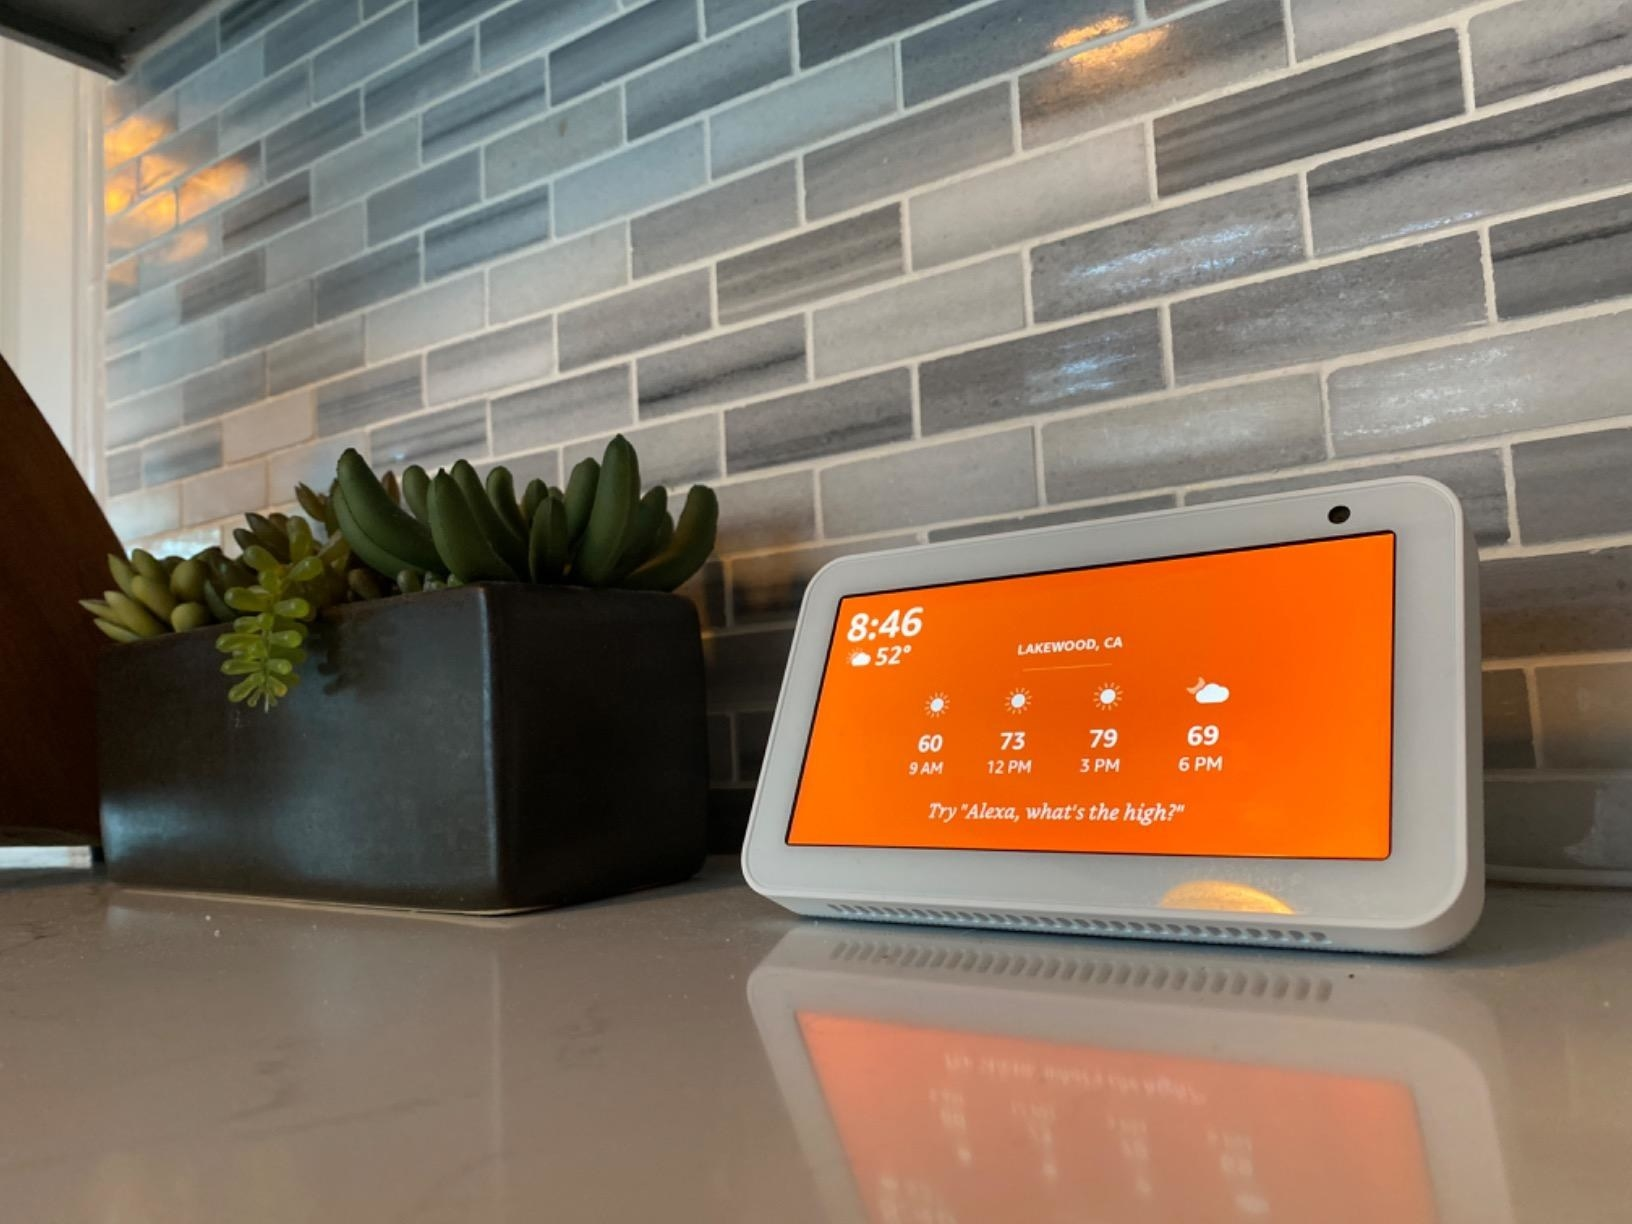 An Amazon Echo Show 5 device displaying the weather